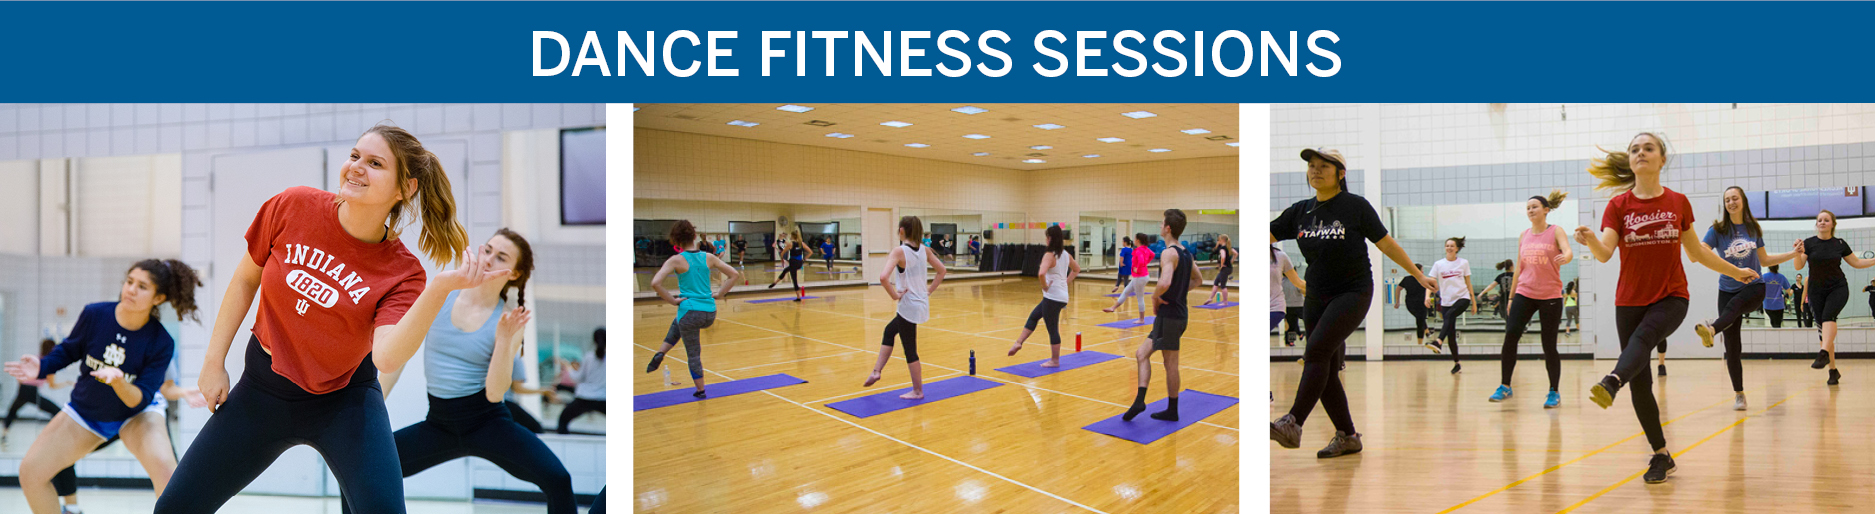 Dance Fitness Sessions